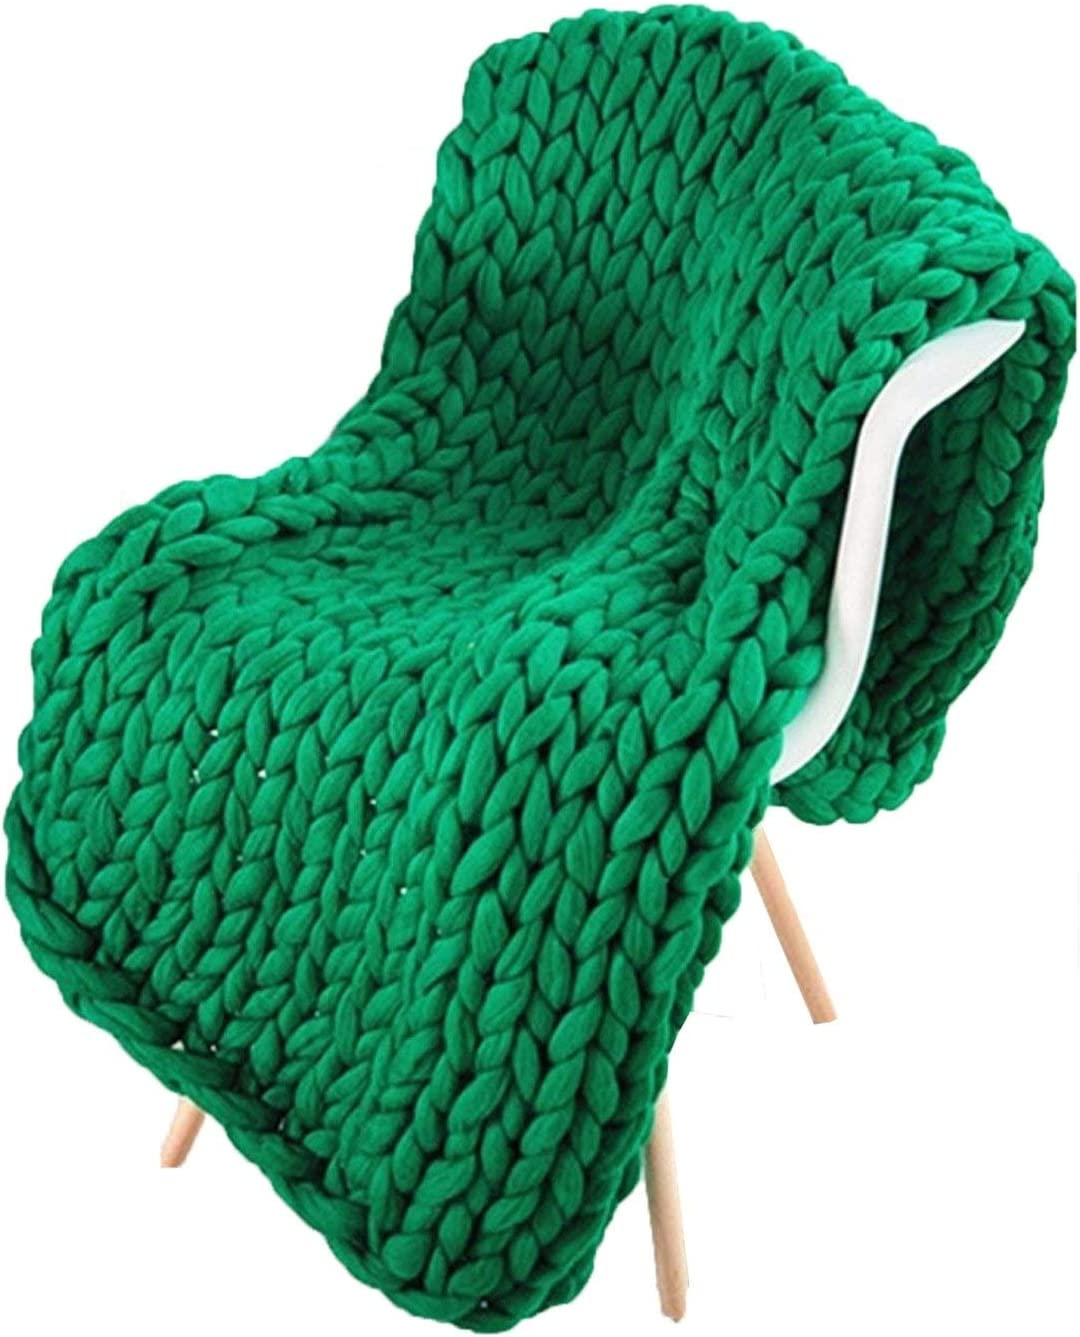 ZCXBHD Chunky Knit Blanket 2021 Fashion Bulky H Knitted Throw Max 44% OFF